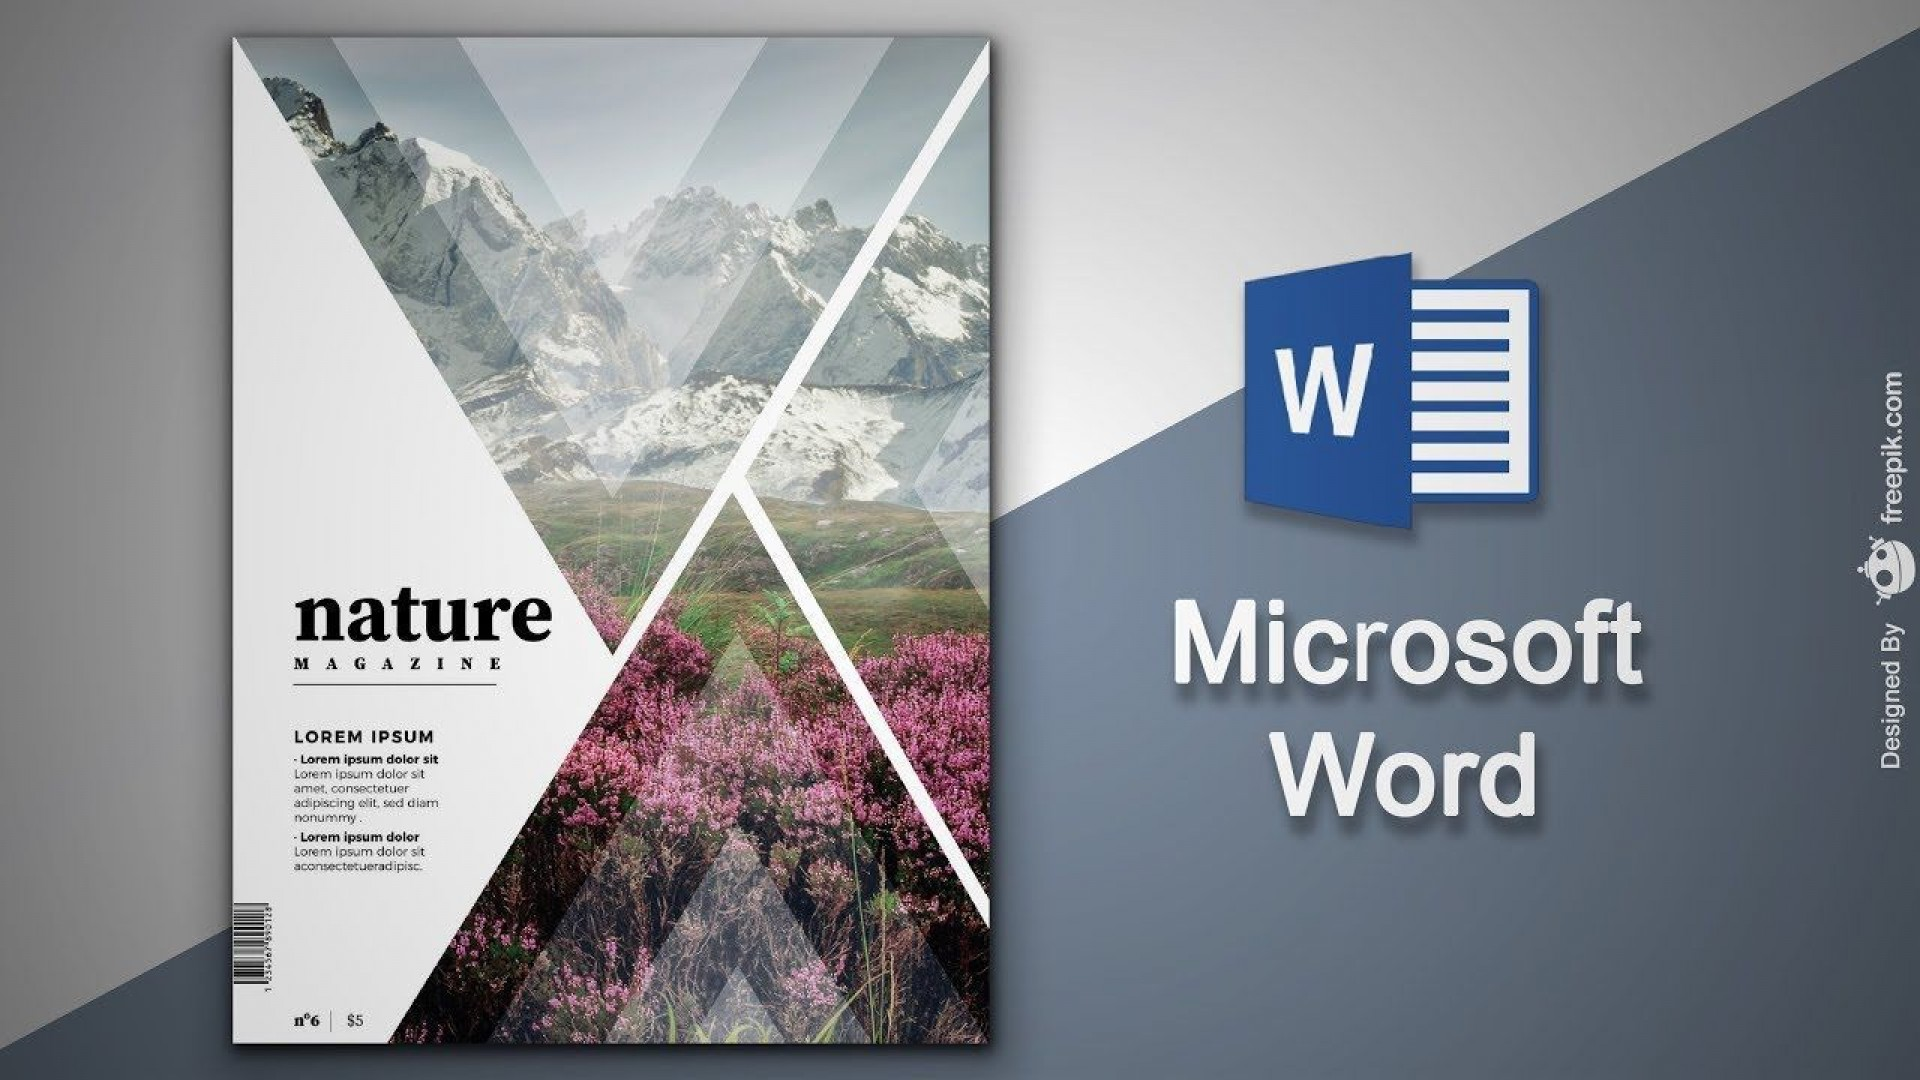 002 Fantastic Magazine Template For Microsoft Word Sample  Layout Design Download1920